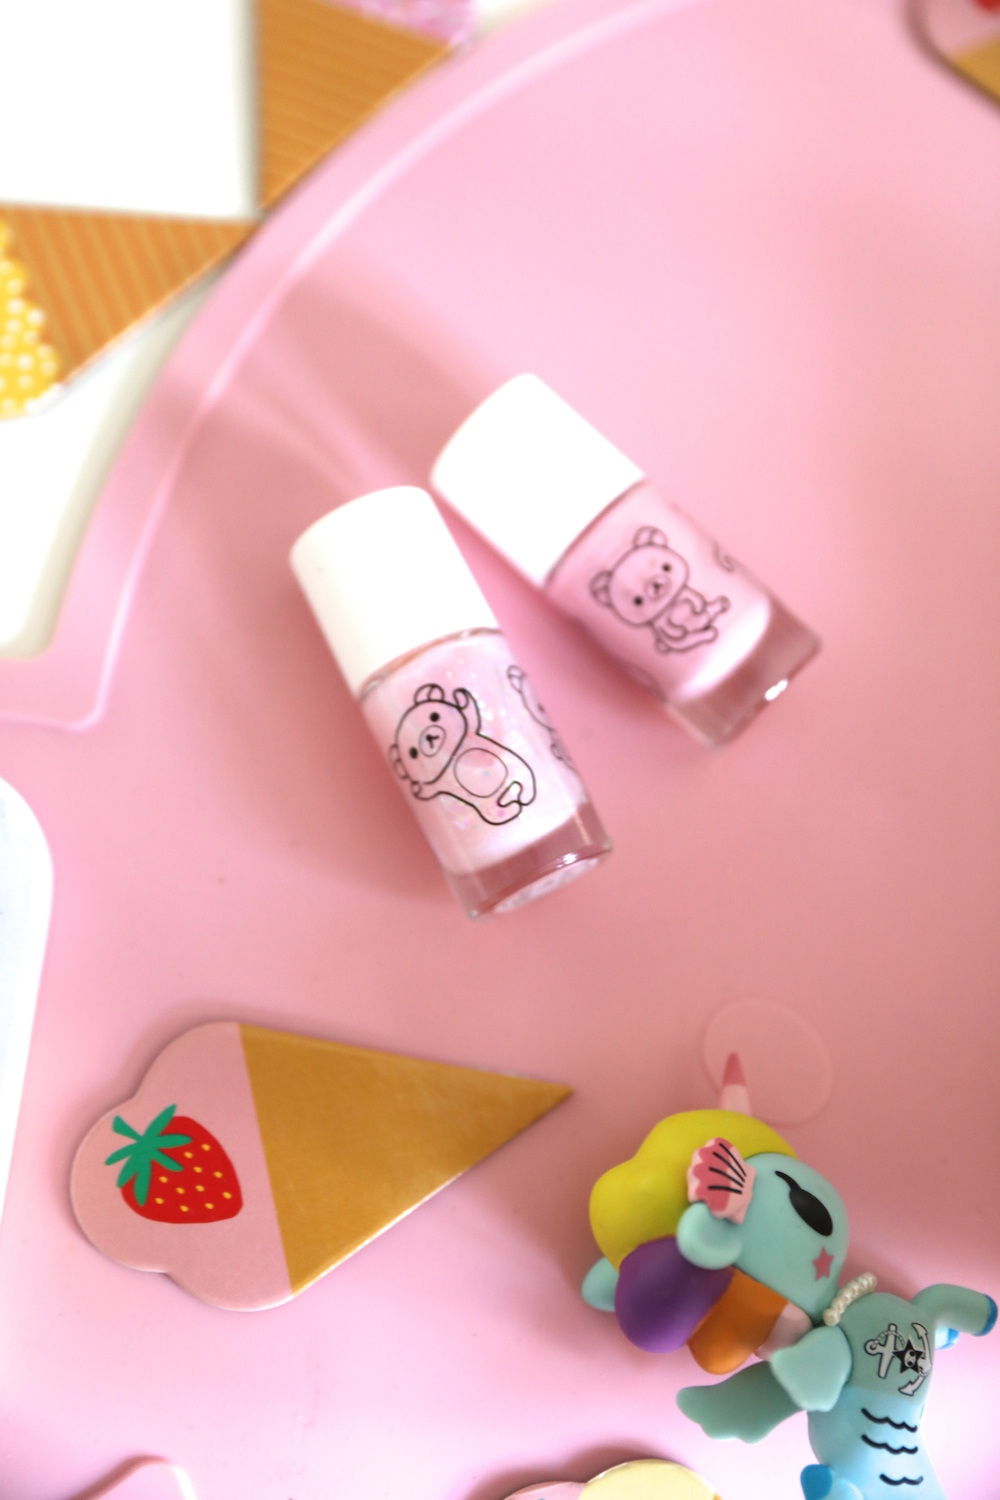 Scout_and_co_Rilakkuma-kids_nail_varnish